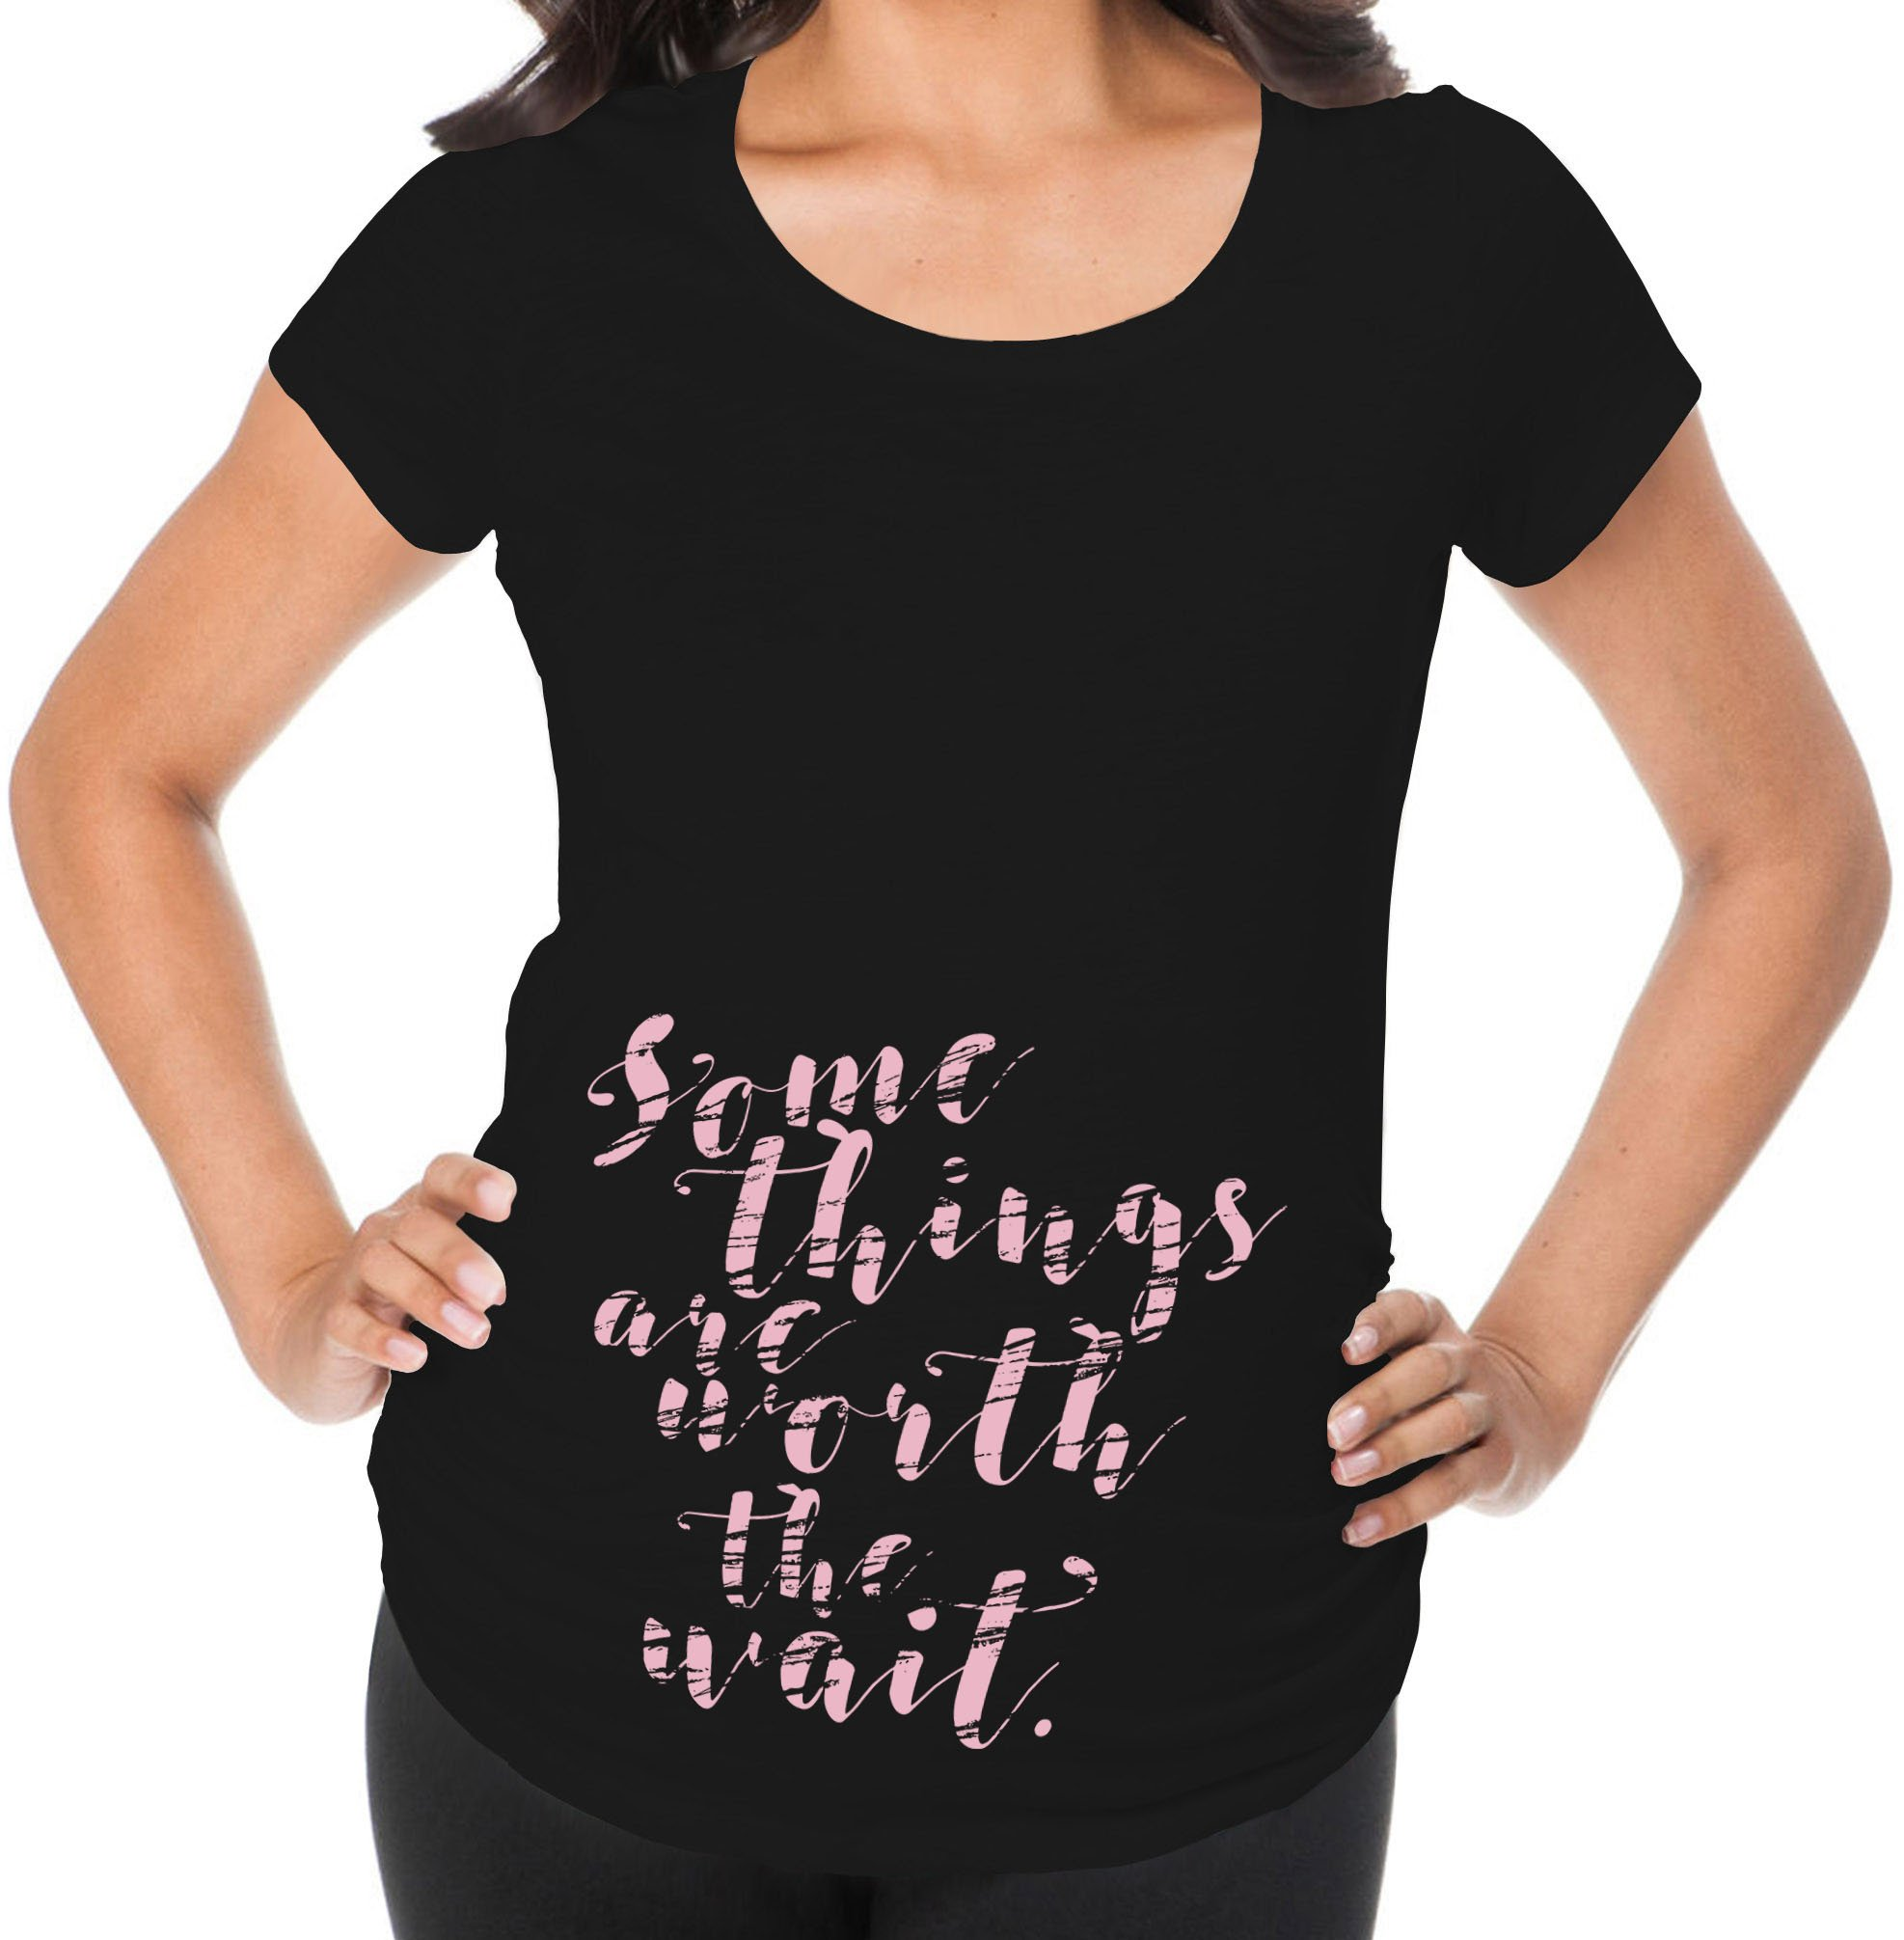 Awkward Styles Some Things Are Worth The Wait Inspirational Pregnancy Announcement Maternity T Shirt New Mom Gift Black 2XL